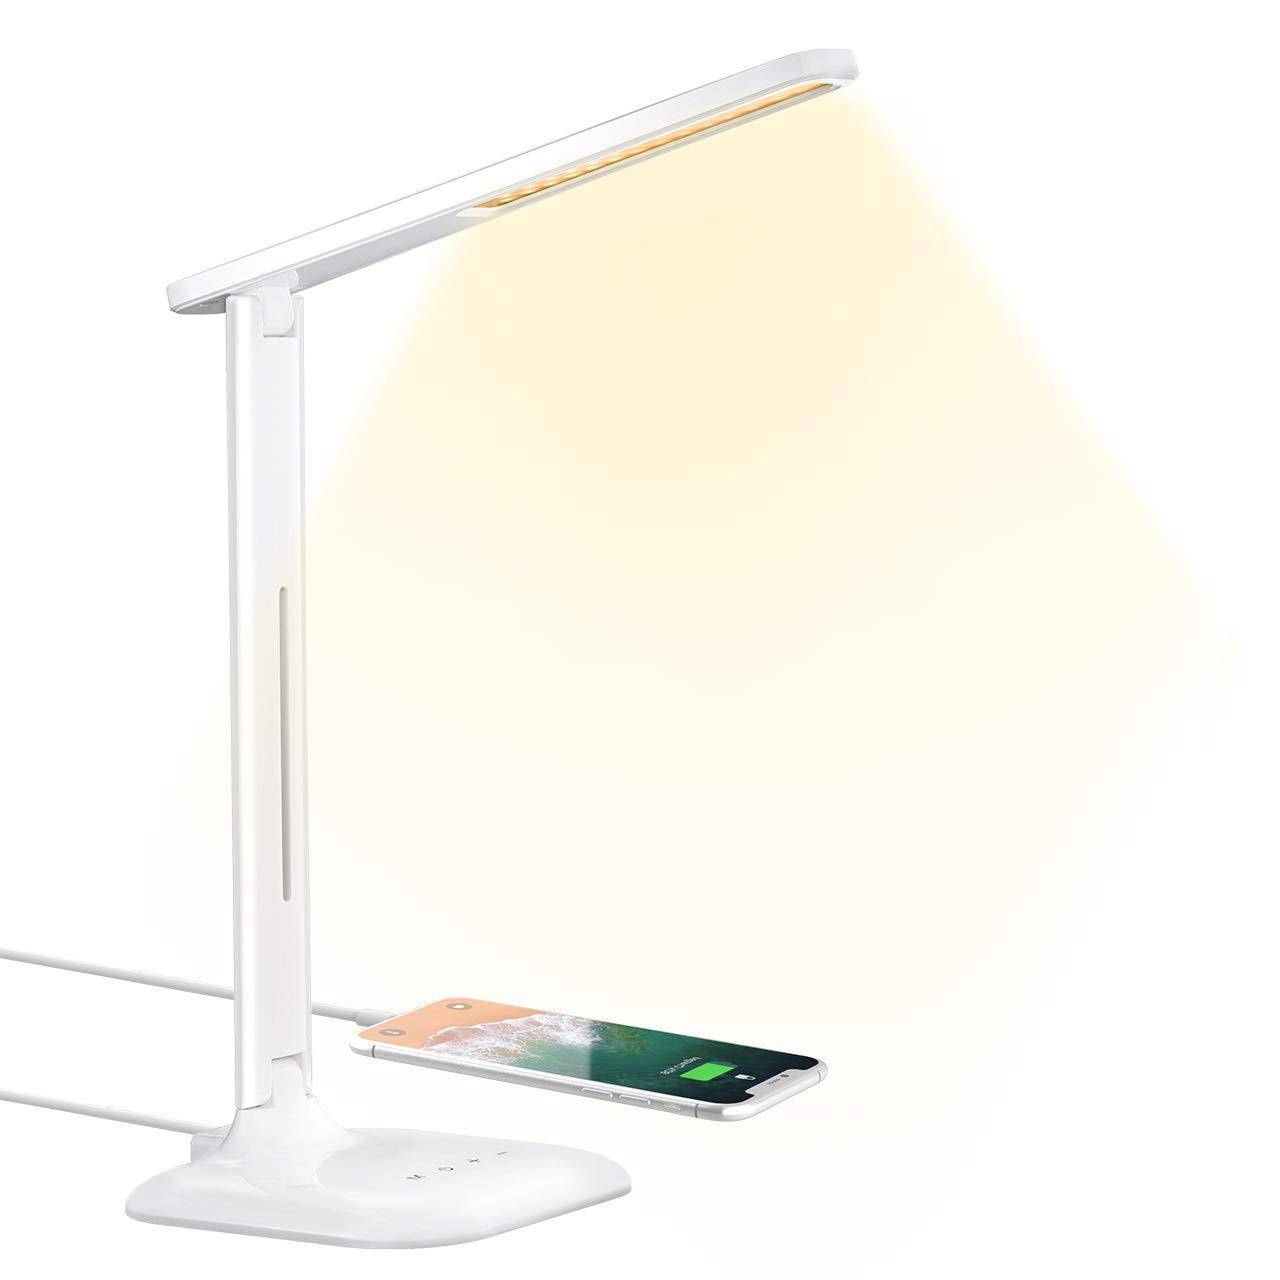 HOMTECH LED Desk Lamp for Space Saving - Best LED Desk Lamp For Study